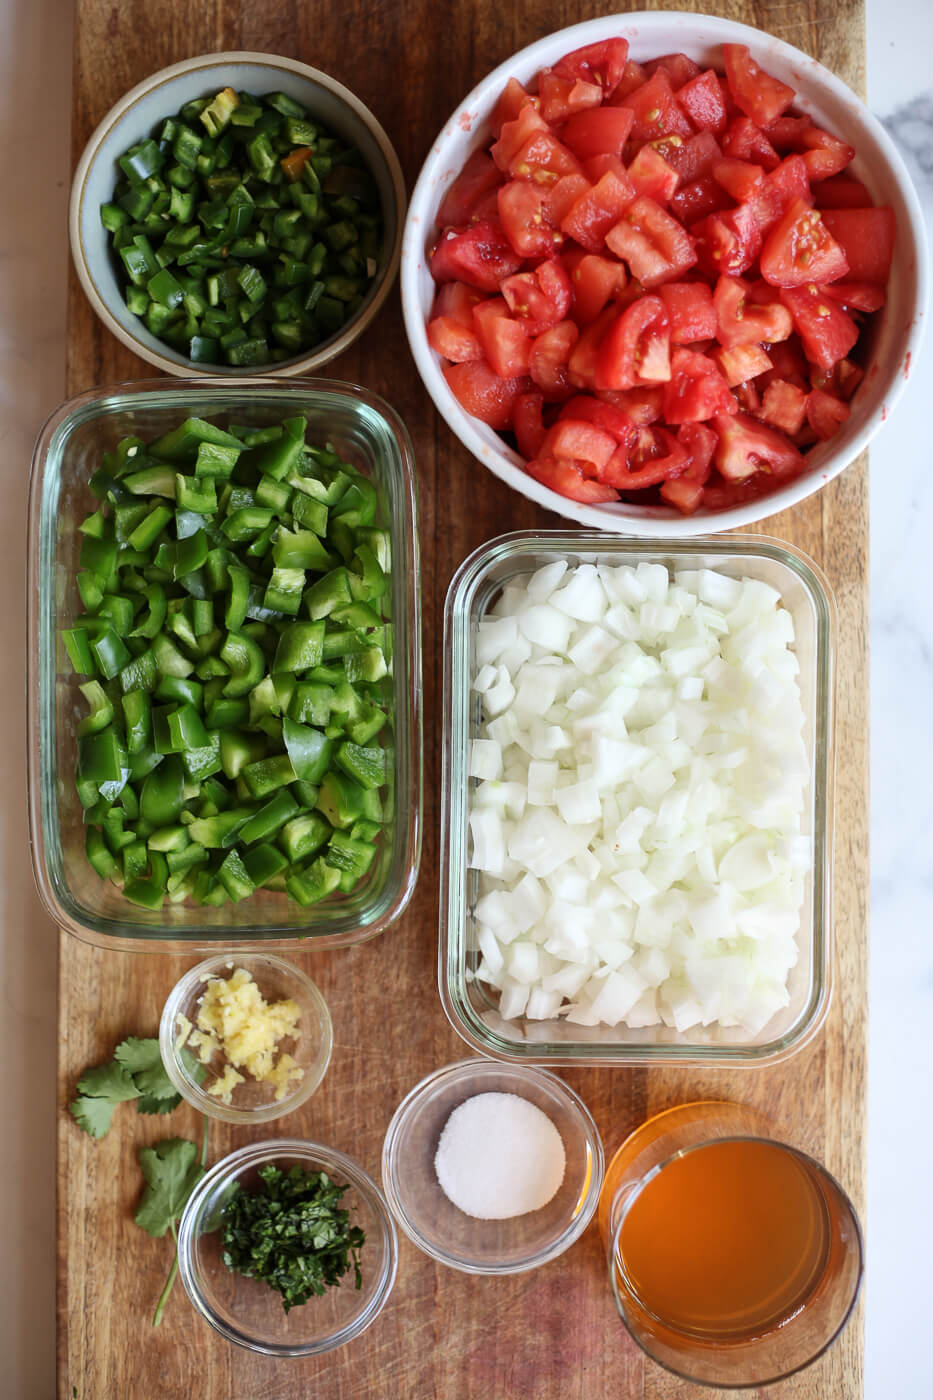 The ingredients for homemade canned salsa are prepared on a cutting board and include tomatoes, bell pepper, onion, jalapeno, garlic, cilantro, salt, and apple cider vinegar.